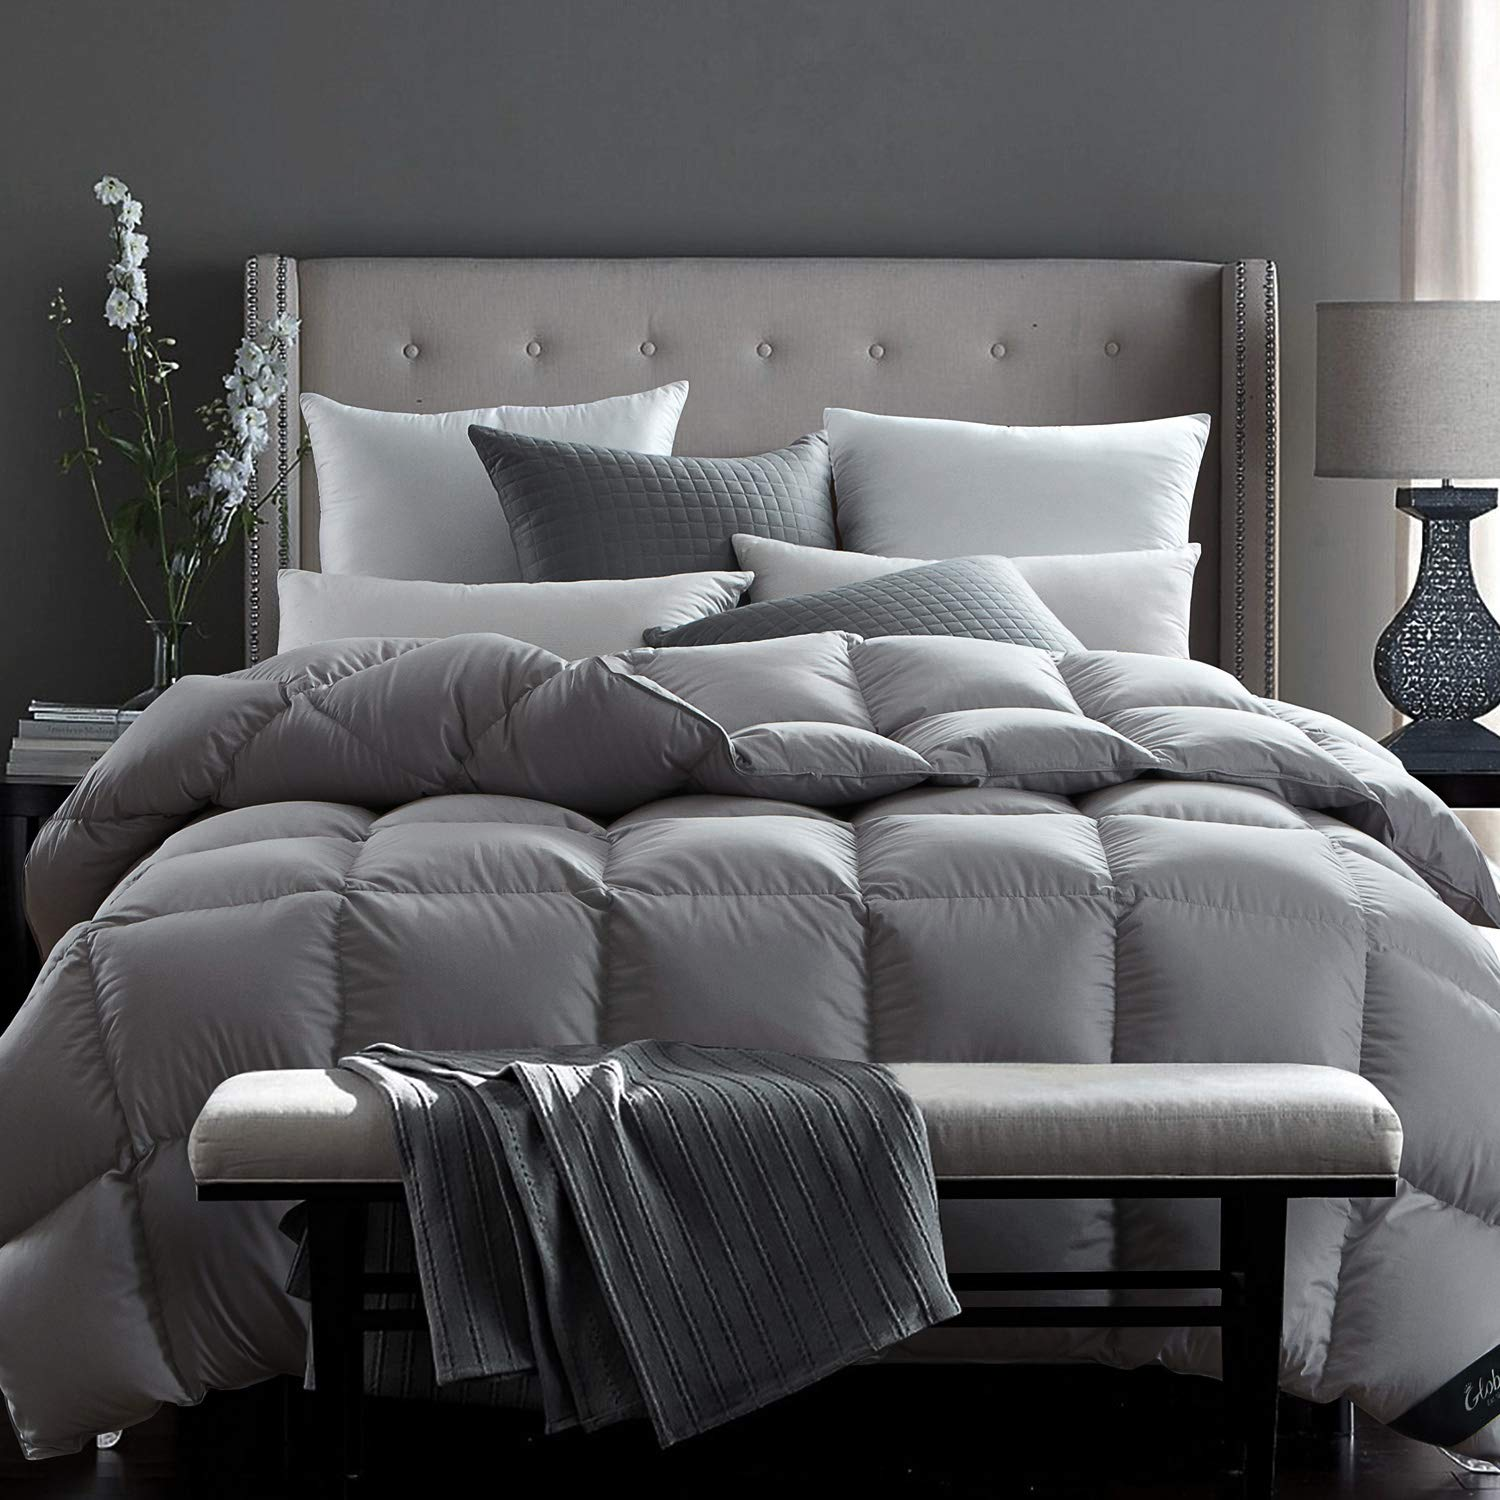 Globon Fusion White Goose Down Comforter Queen Size, 50 Ounce, 600 Fill Power, All Cotton 300 Thread Count Shell, Hypoallergenic, With Corner Tabs, Winter, Grey, XJMY-B17011 by Globon